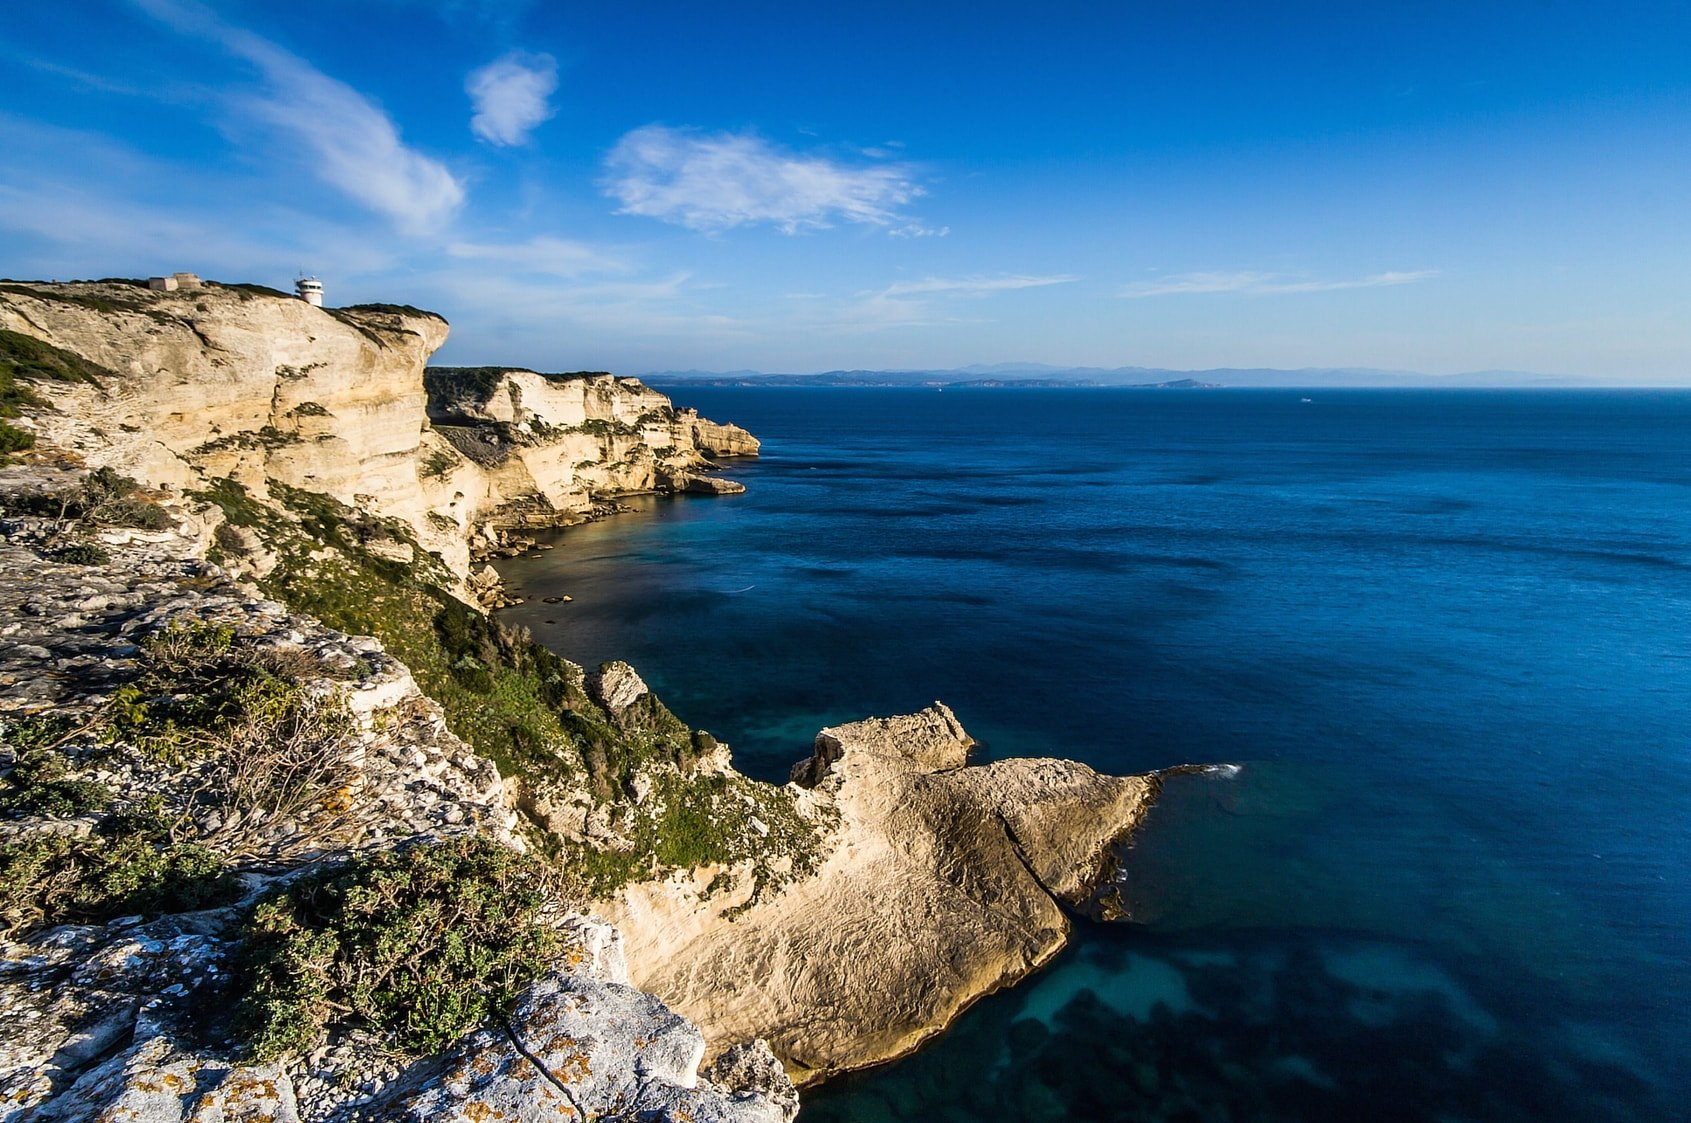 corsica-yacht-charter-itinerary-route-7-days-1-week